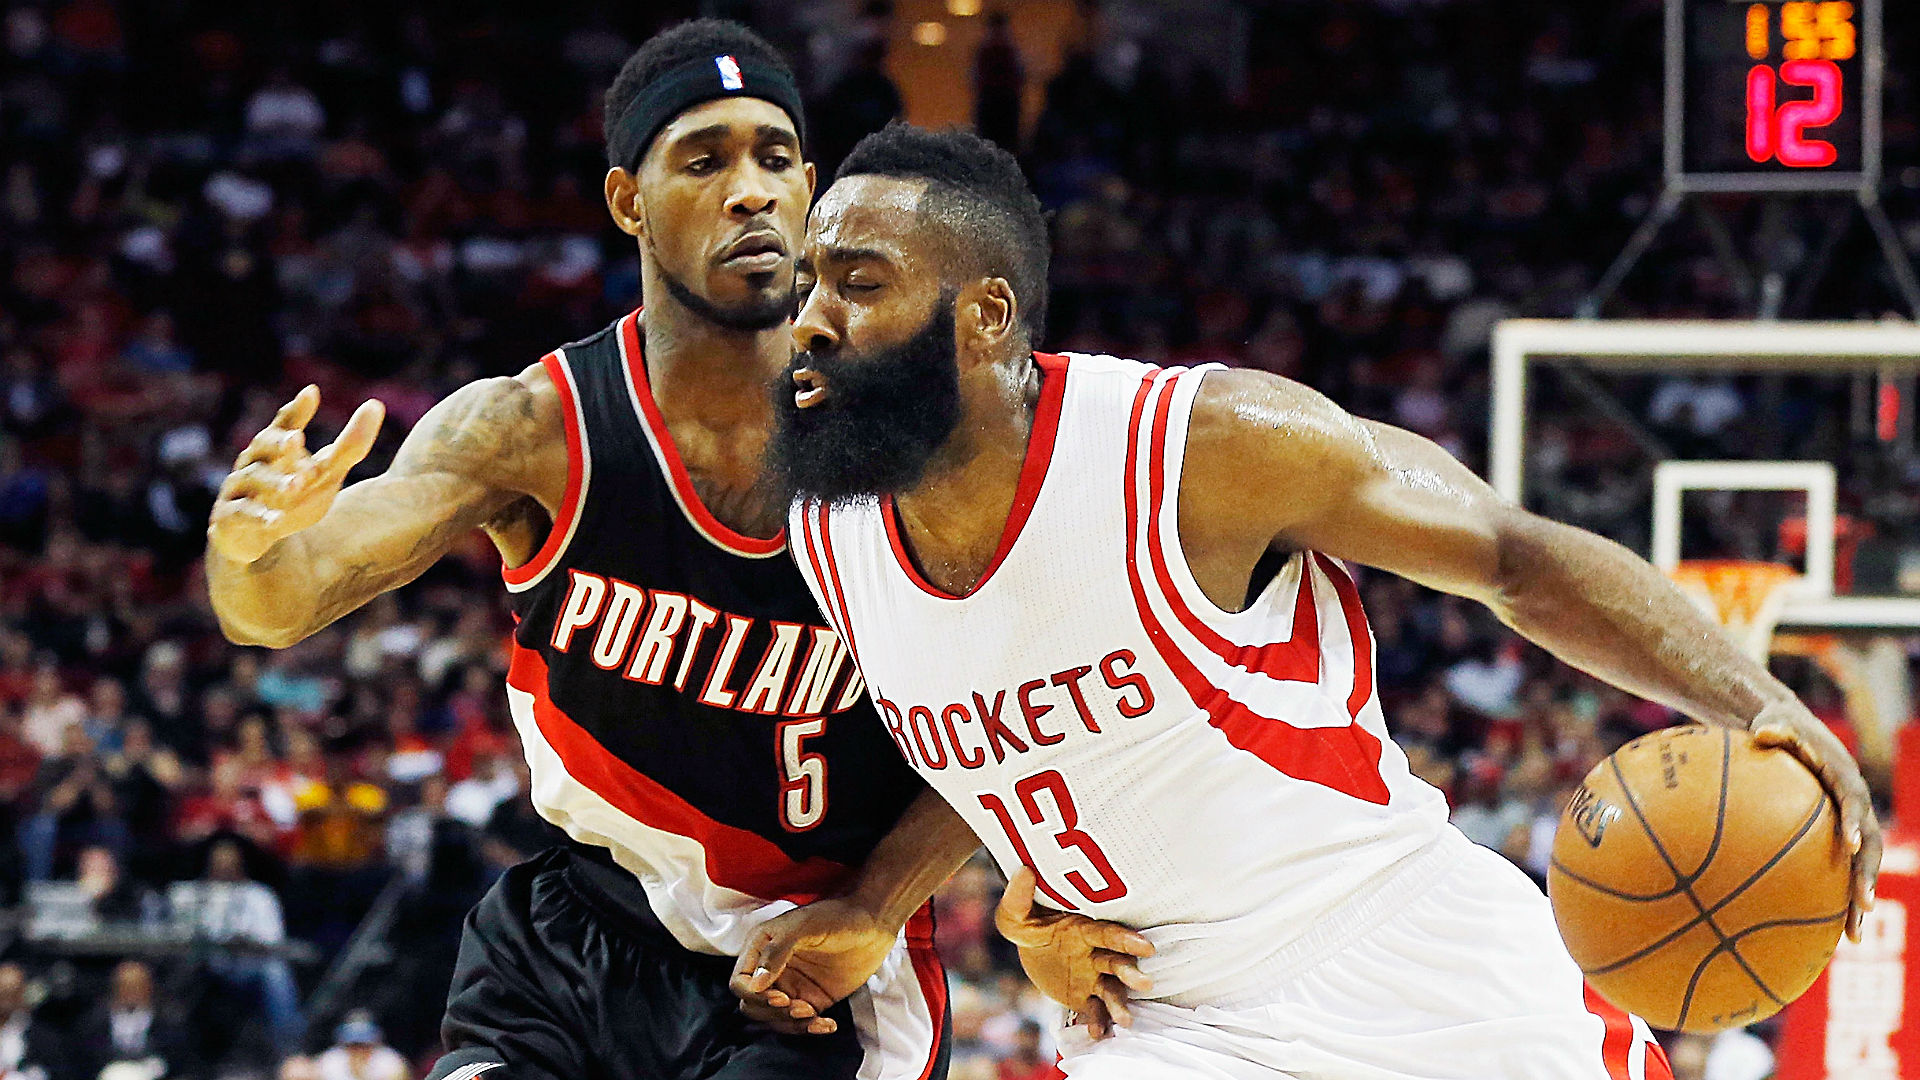 harden-james-021015-getty-ftr.jpg